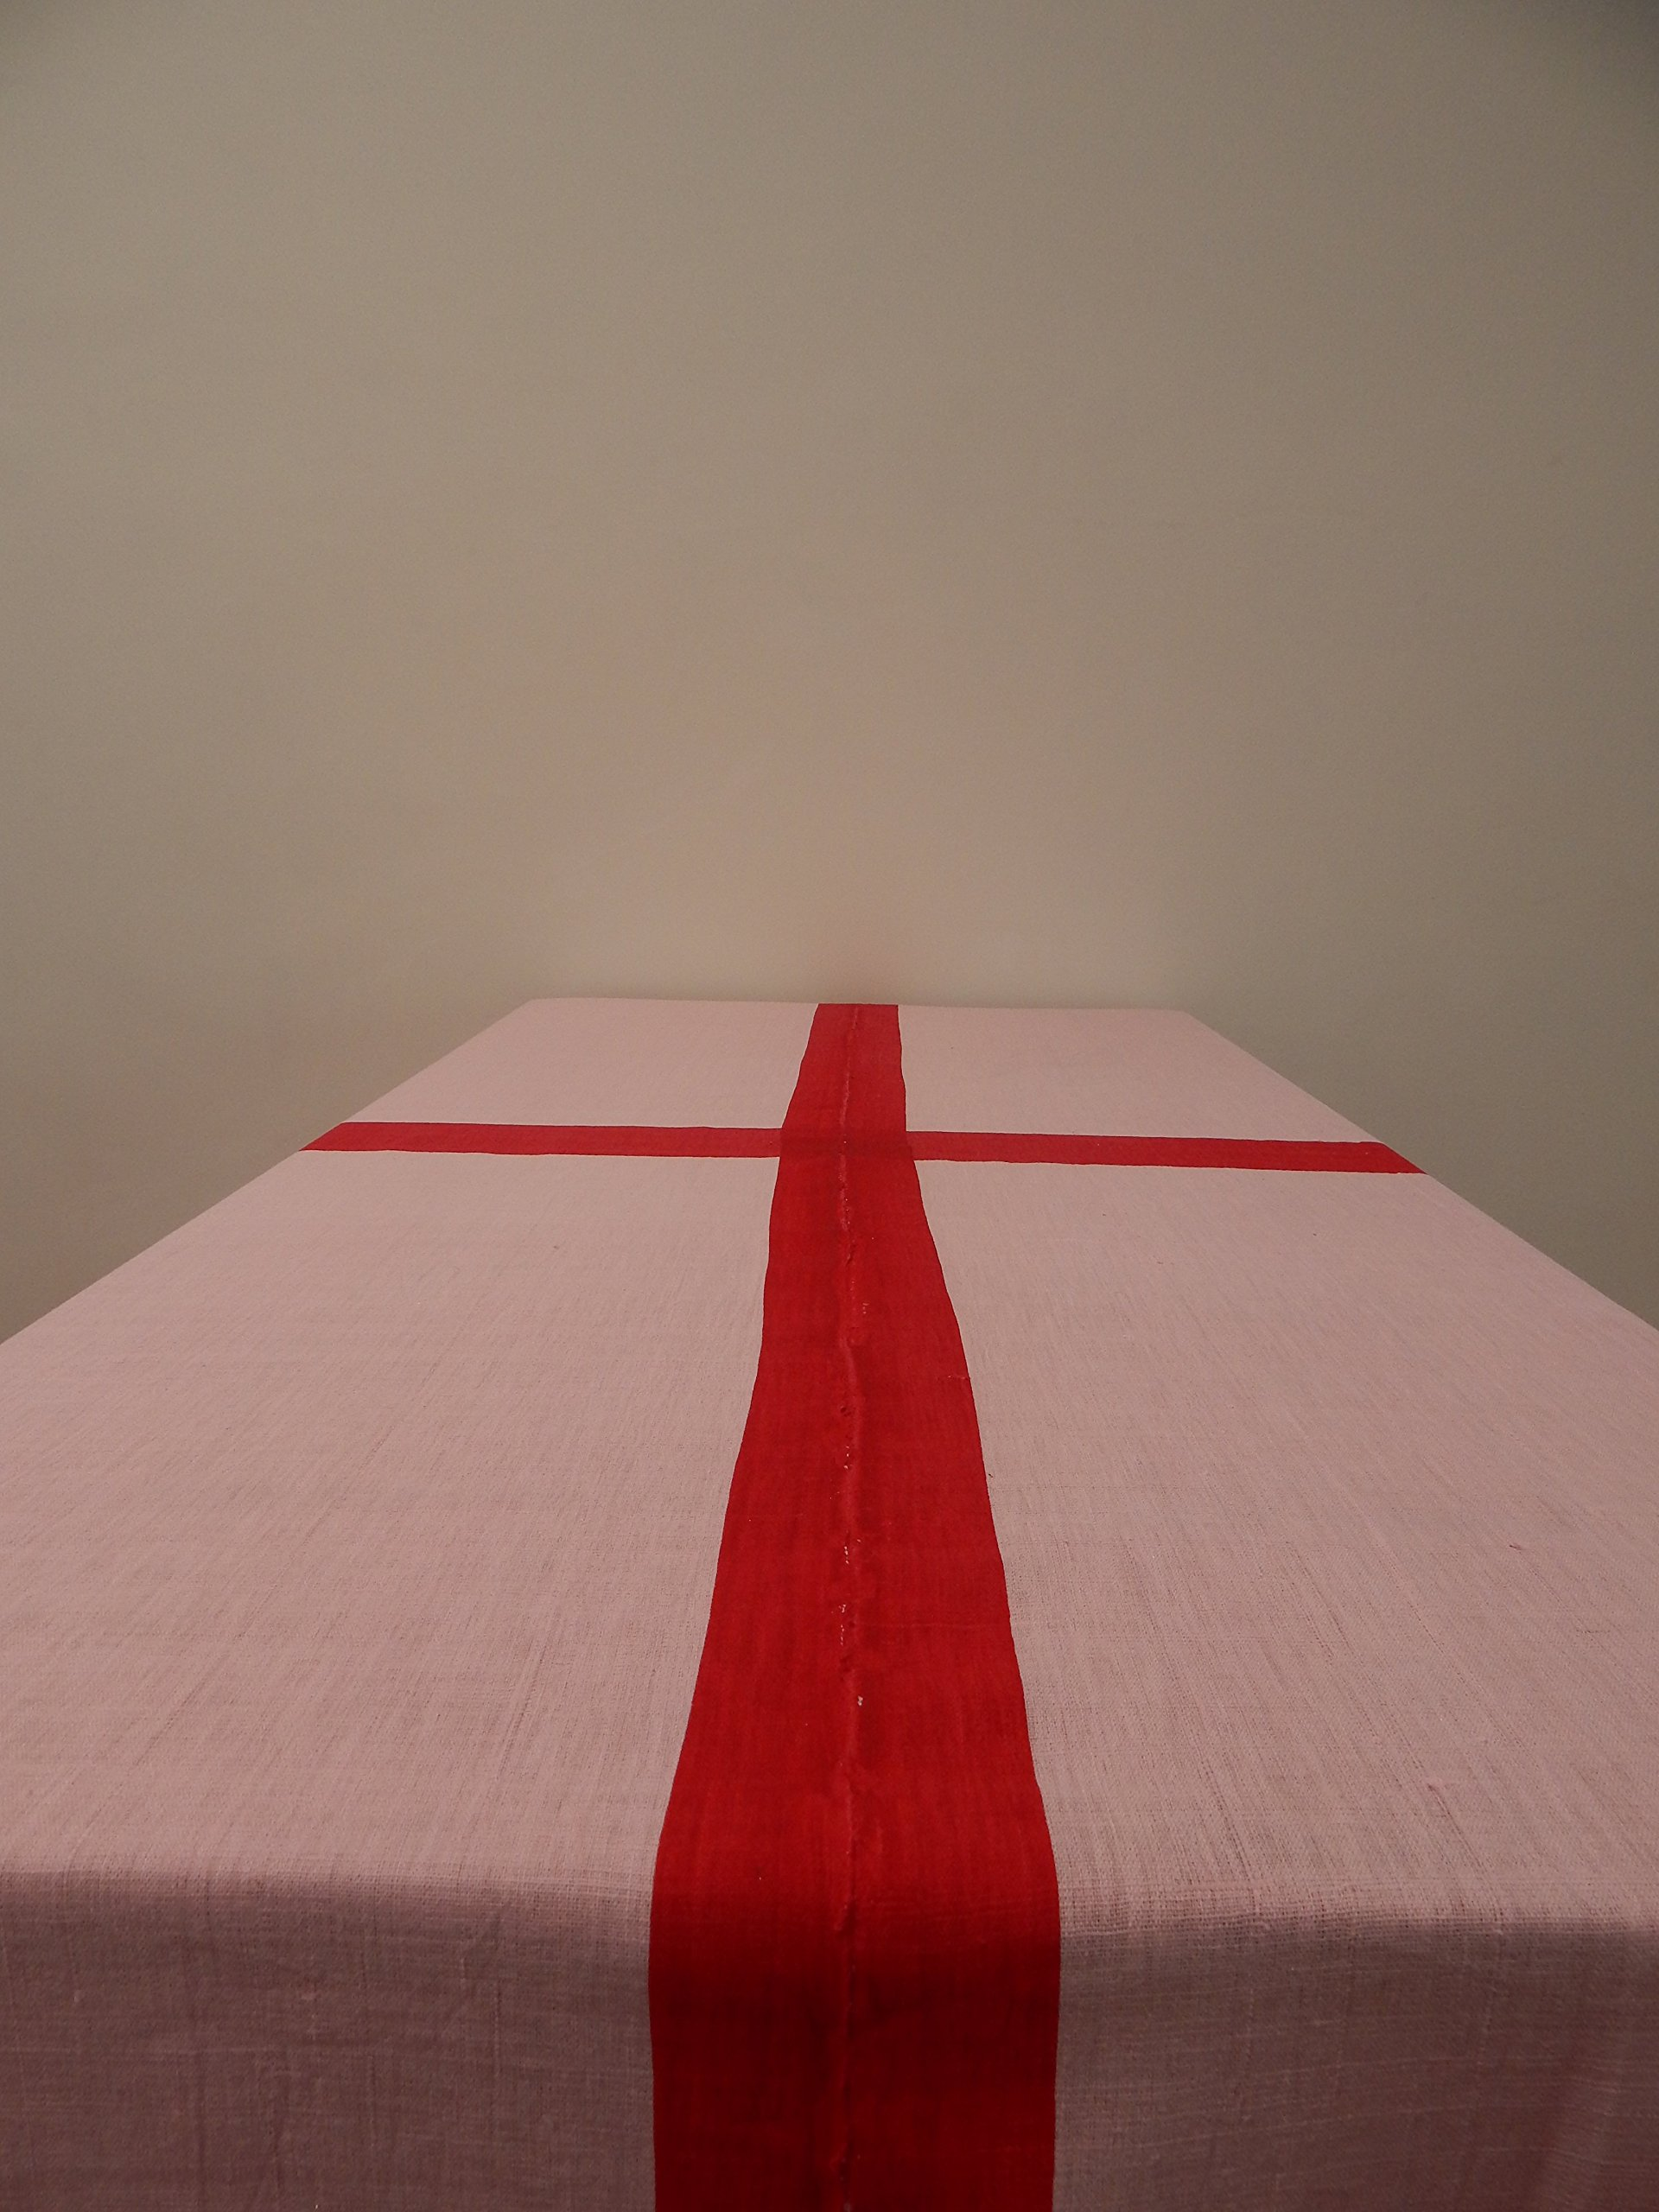 Gitika Goyal Home Cotton Khadi Red Screen Printed Tablecloth with Border Design, Pink, 72'' x 108''